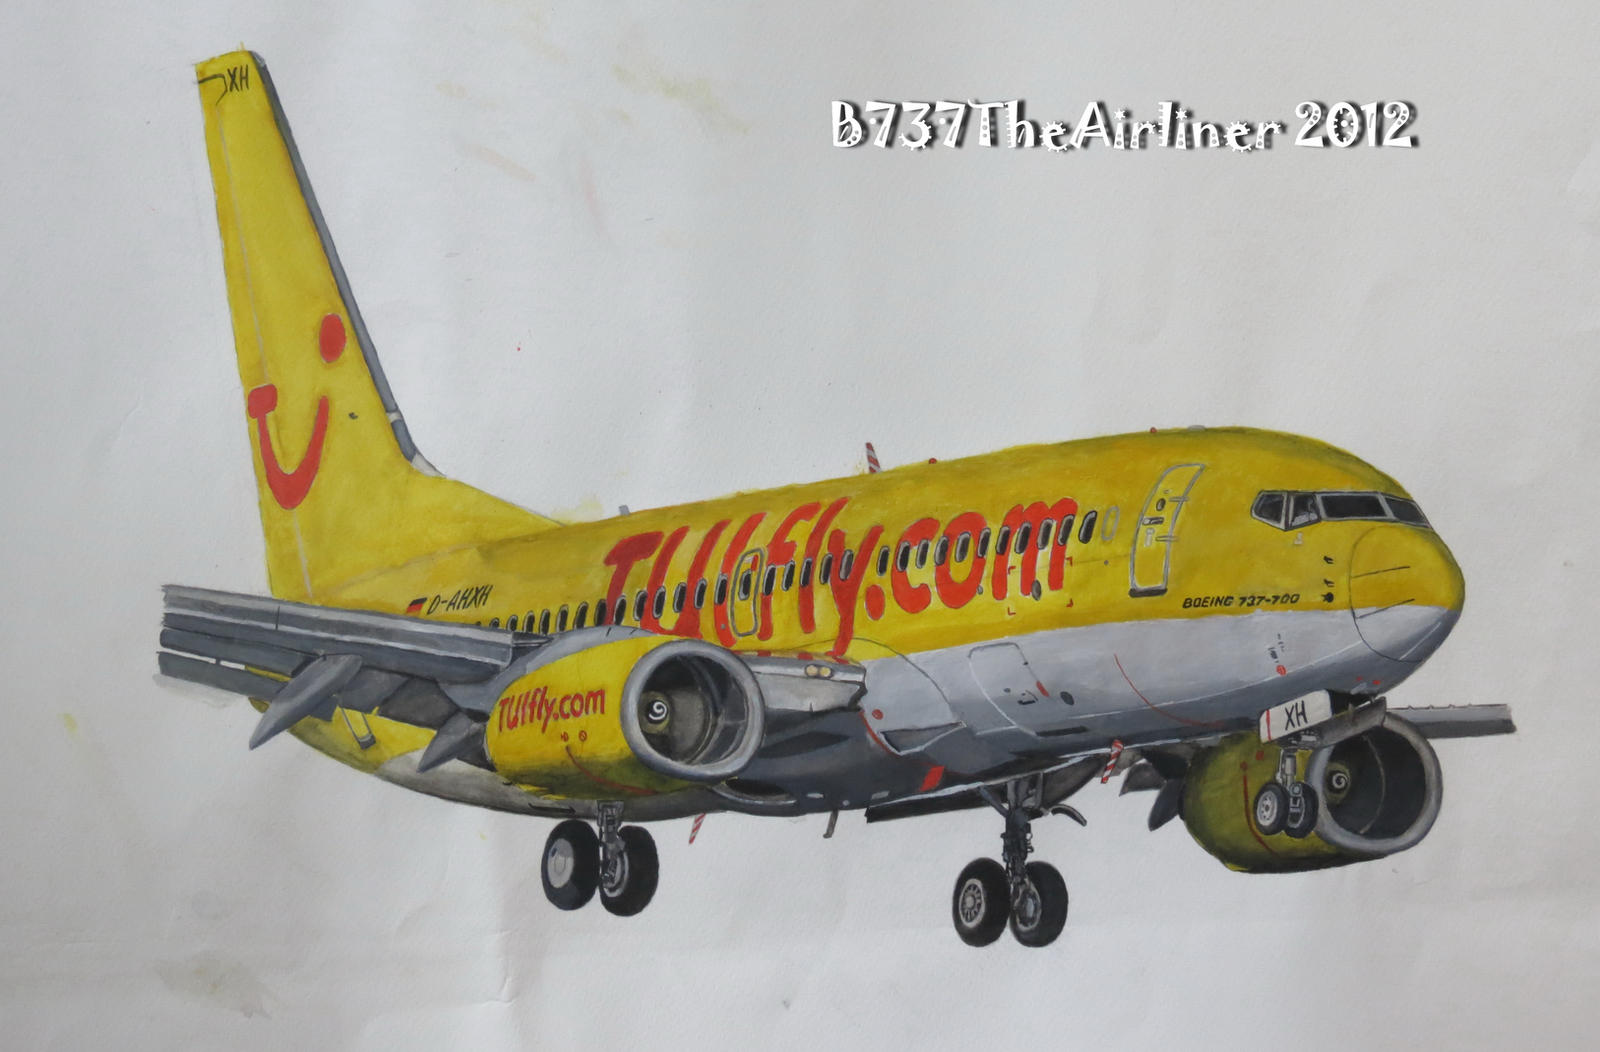 TUIFly Boeing 737-700 Painting by B737TheAirliner